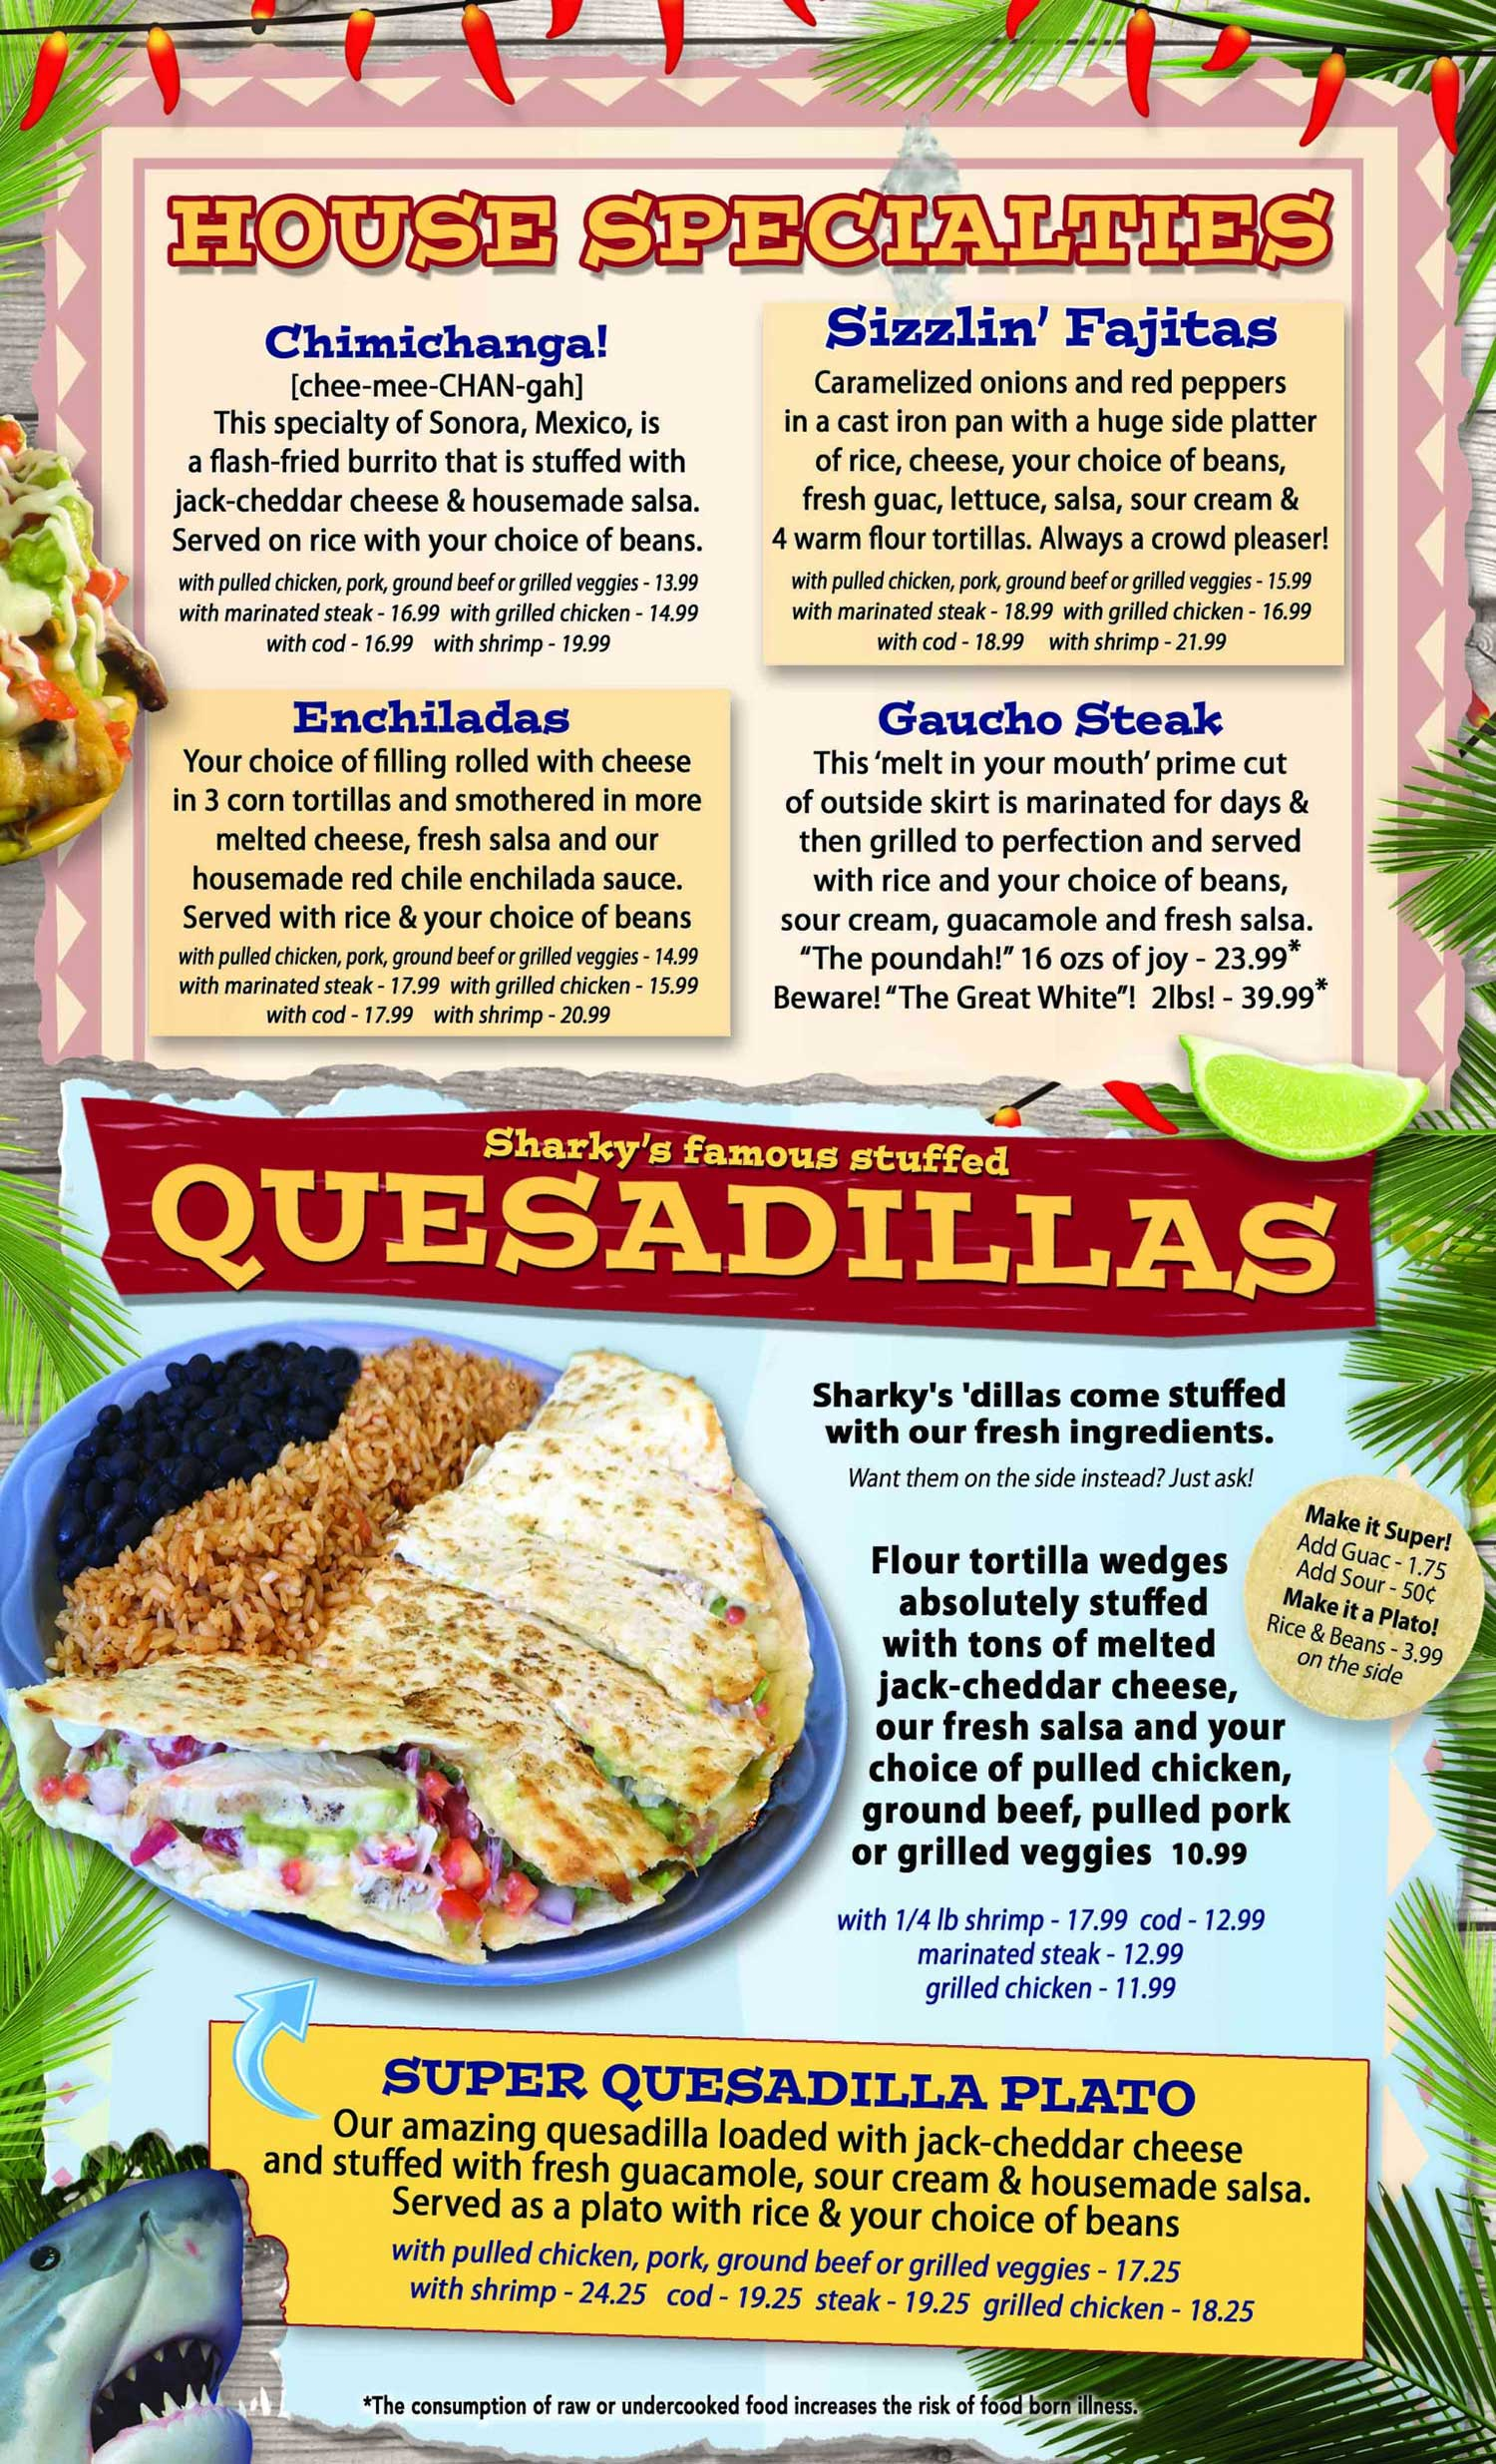 House specialties and Quesadillas